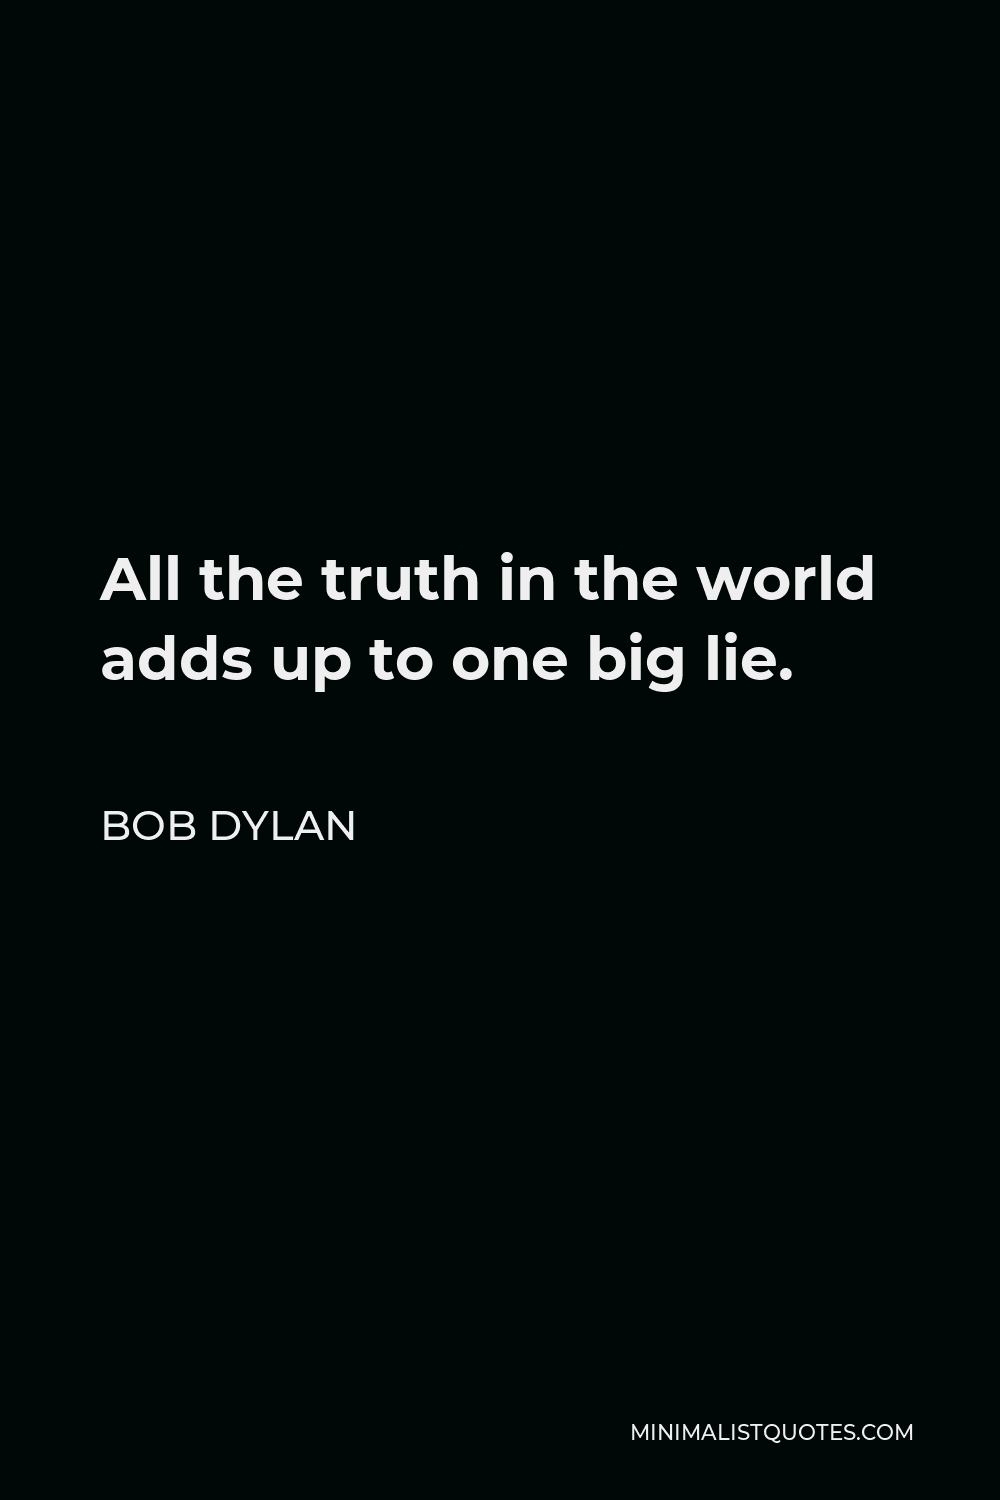 Bob Dylan Quote - All the truth in the world adds up to one big lie.